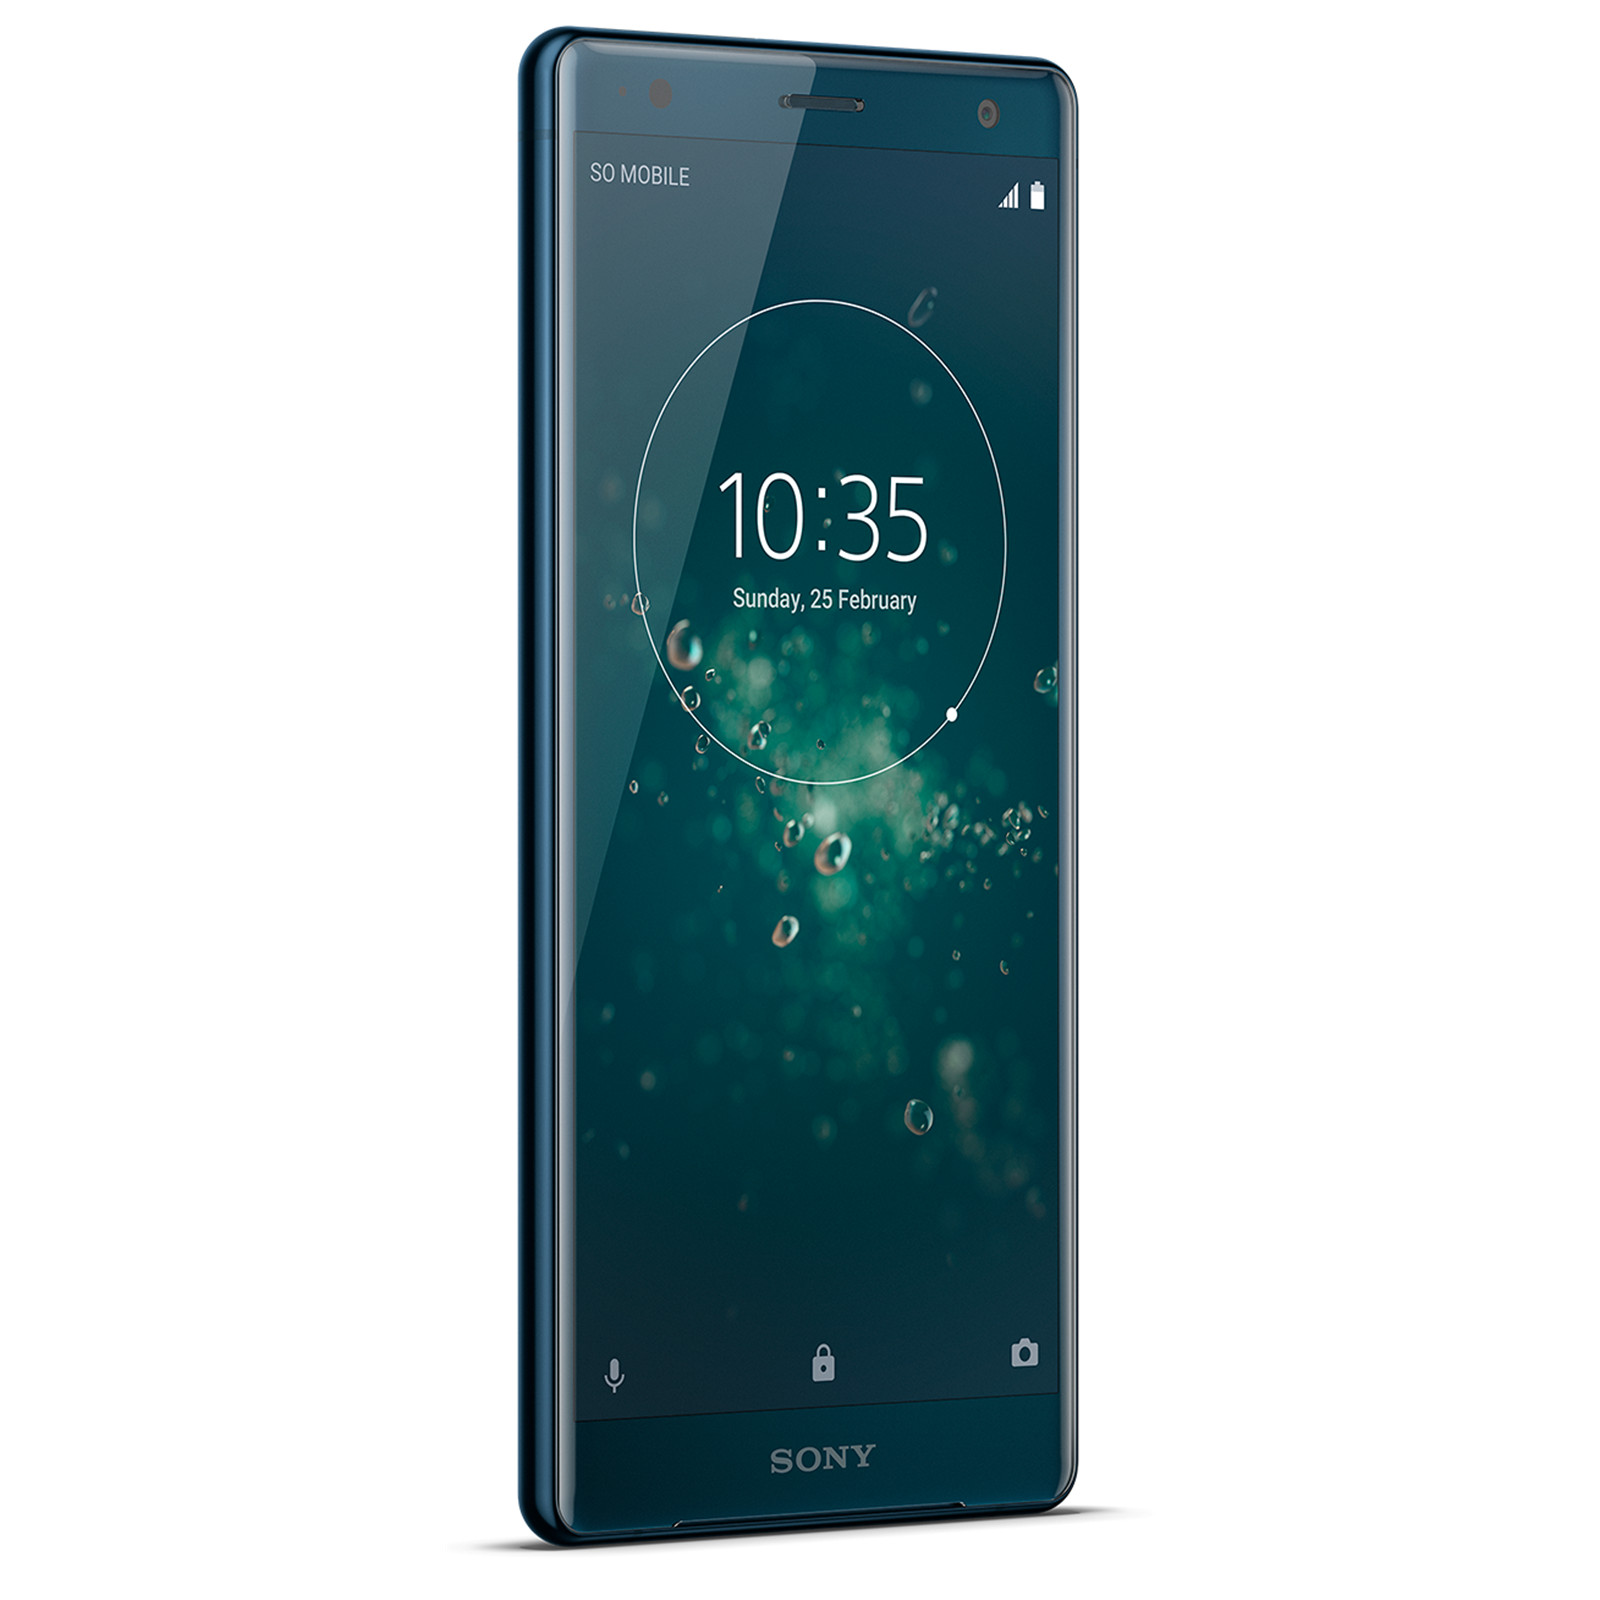 Buy the Sony Xperia XZ2 Dual Smartphone - Deep Green - 6GB RAM, 64GB